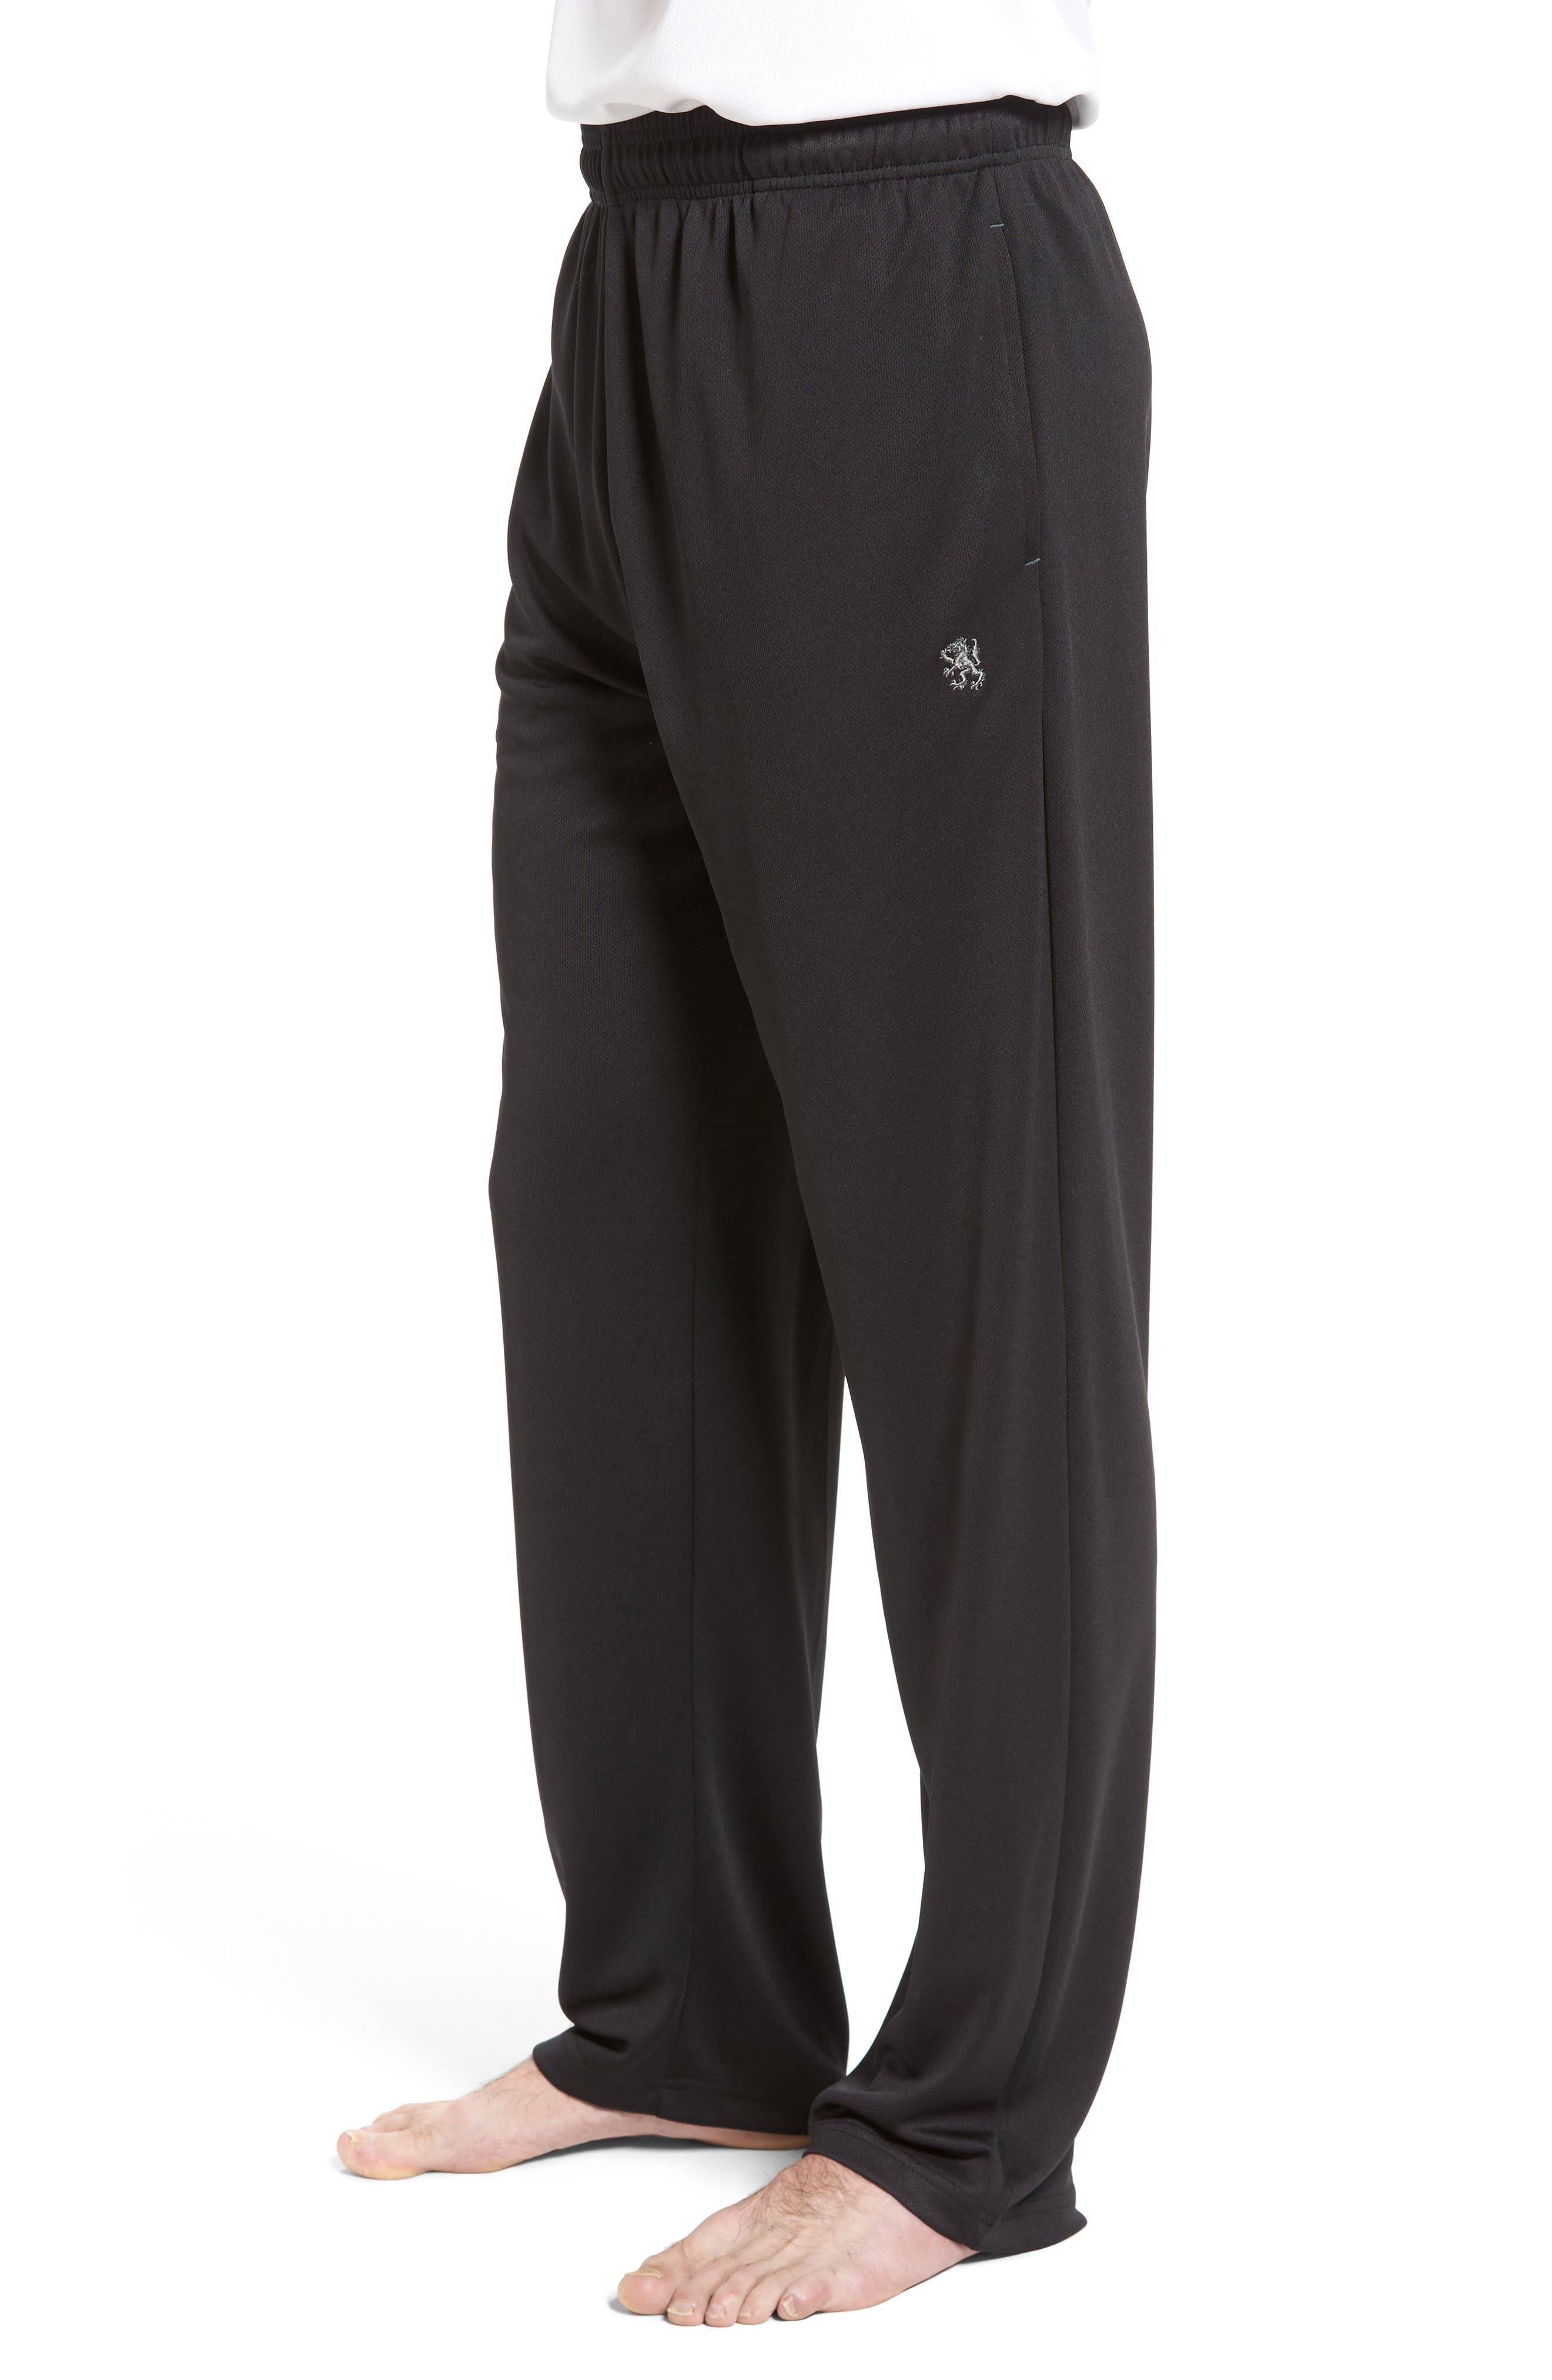 Work Out Lounge Pants,                             Alternate thumbnail 7, color,